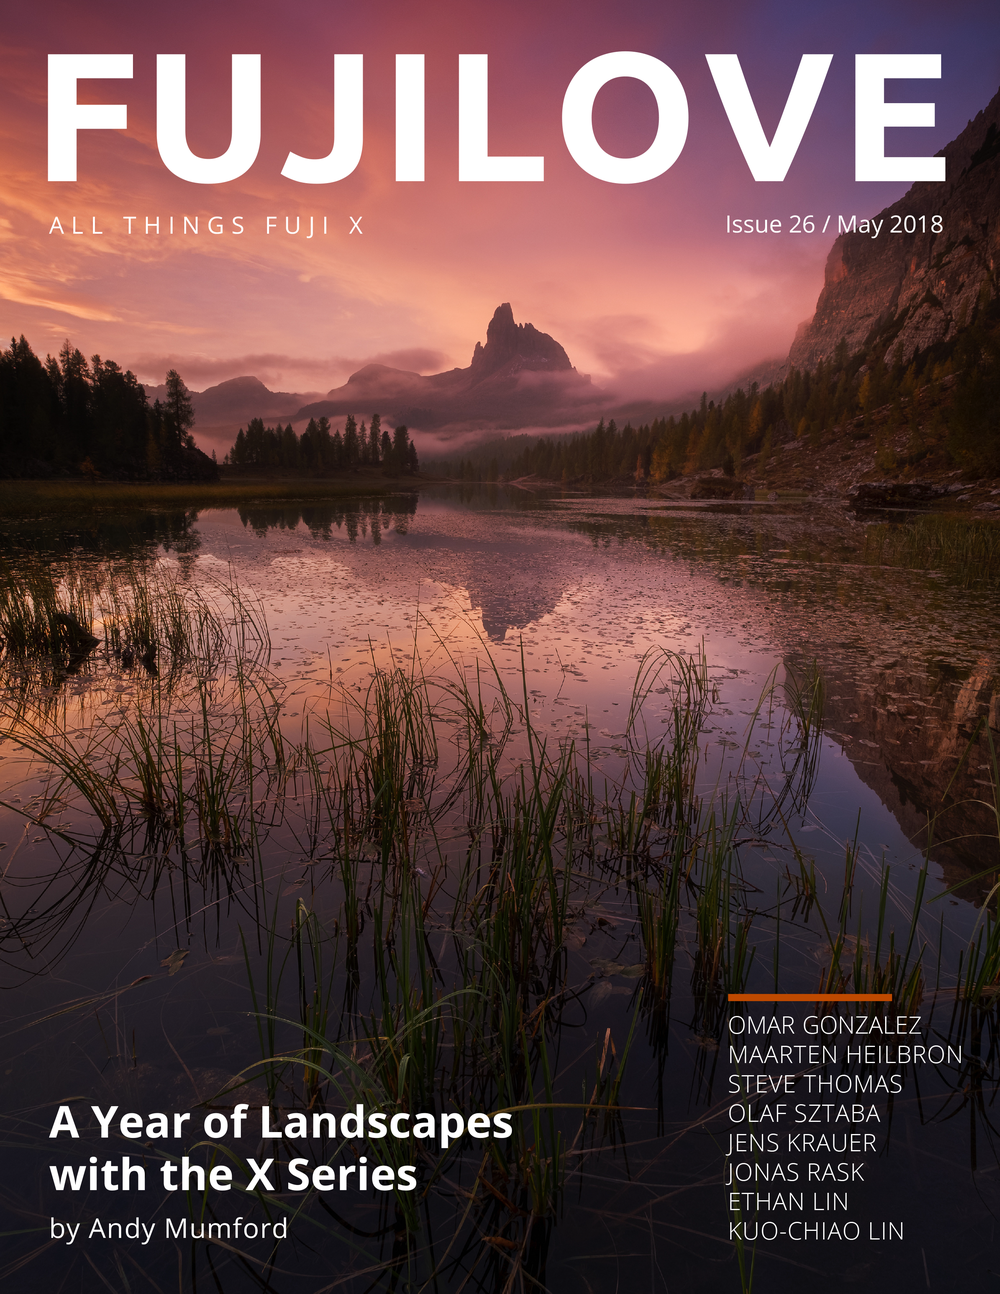 Fujilove Magazine gift guide for photographers